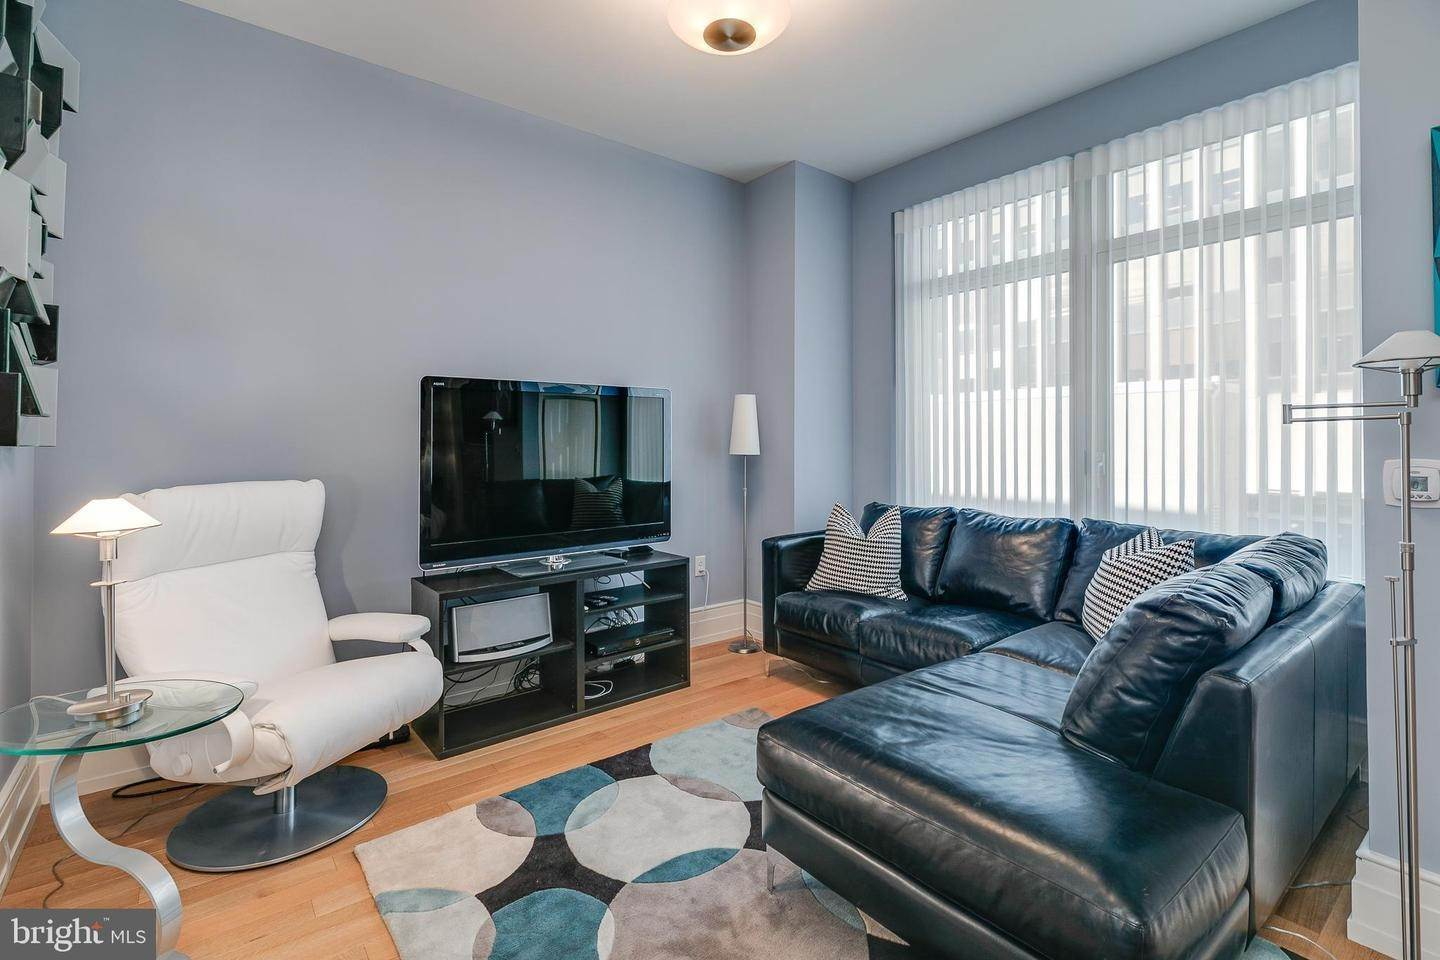 Condominiums for Sale at 130 S 18TH ST #608 Philadelphia, Pennsylvania 19103 United States